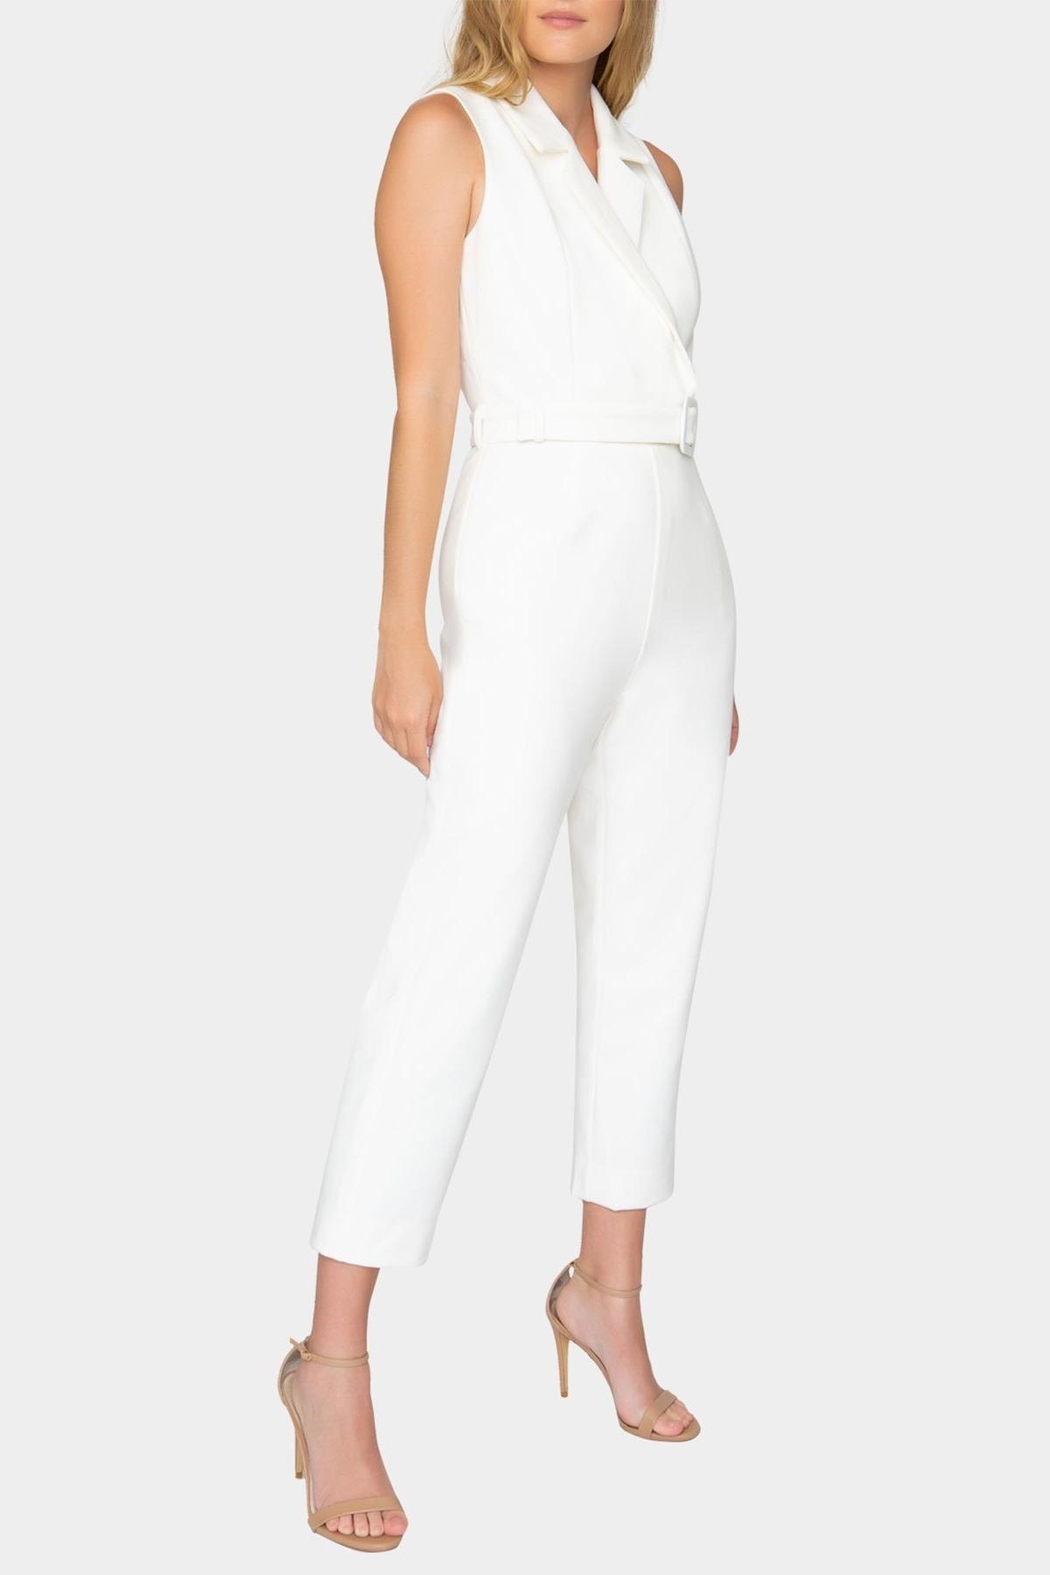 Tart Collections Belted Jumpsuit - Front Full Image